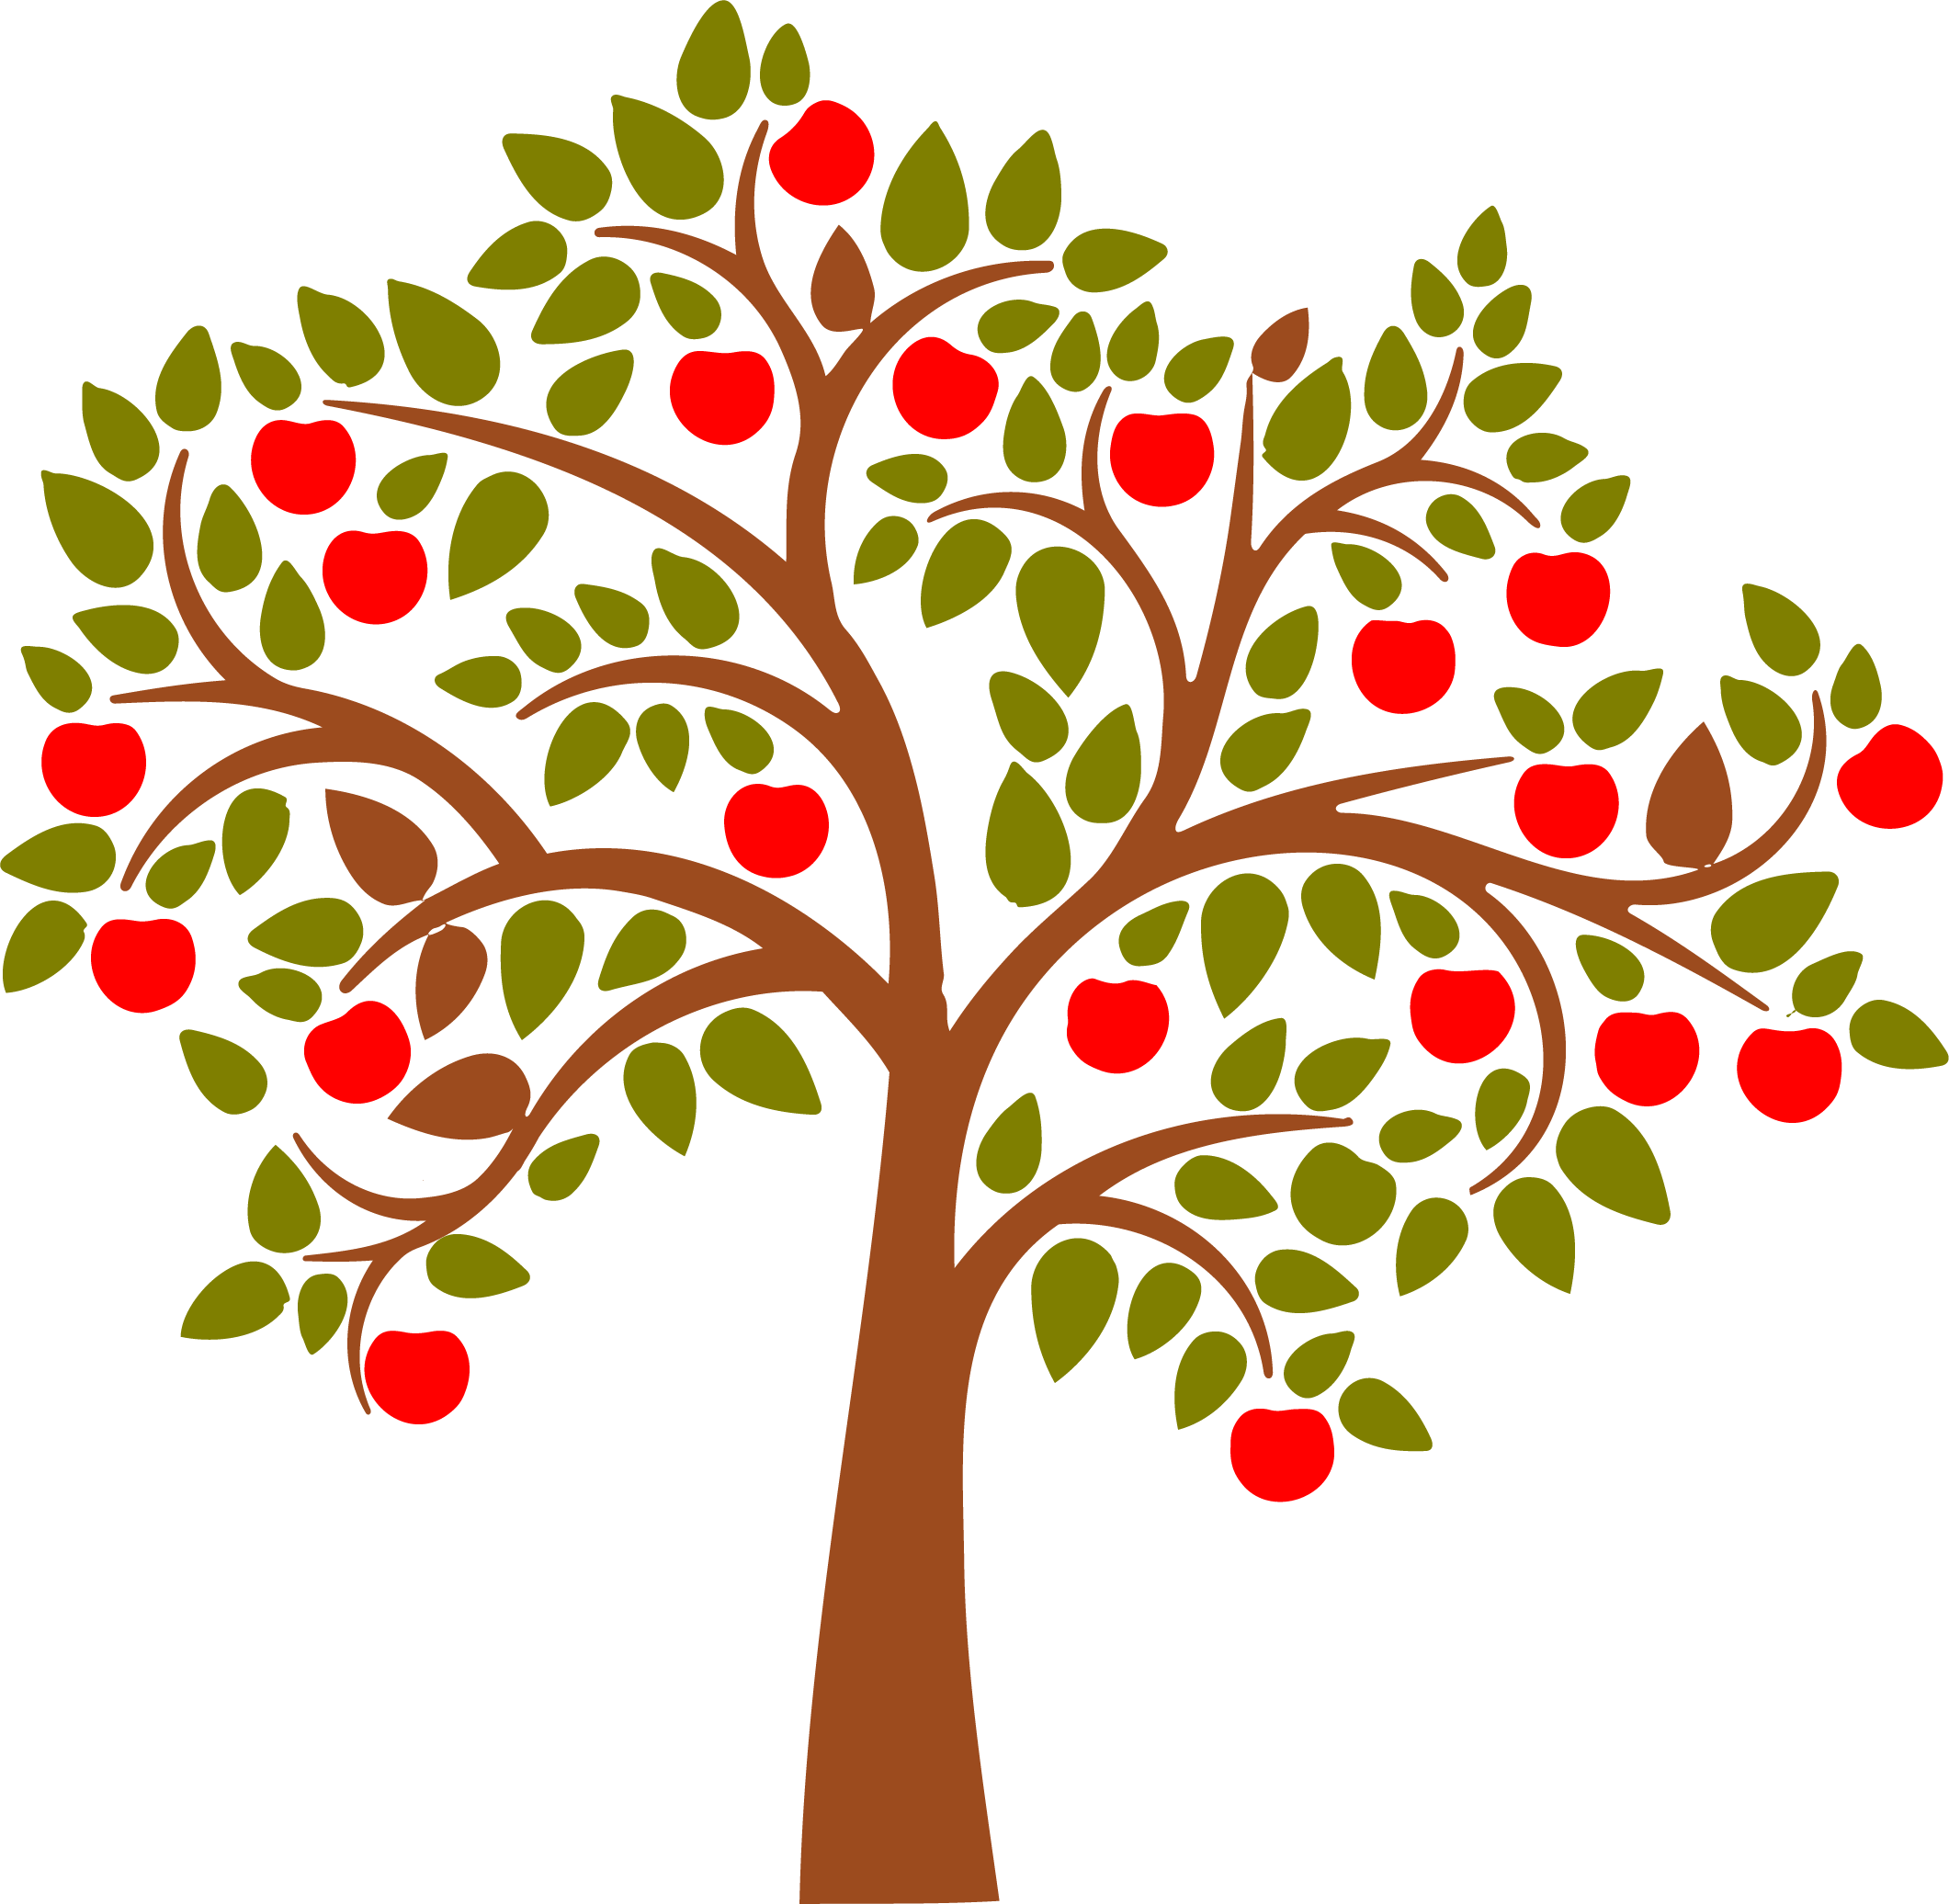 Apple tree root clipart clip library stock Apple Tree Drawing at GetDrawings.com | Free for personal use Apple ... clip library stock